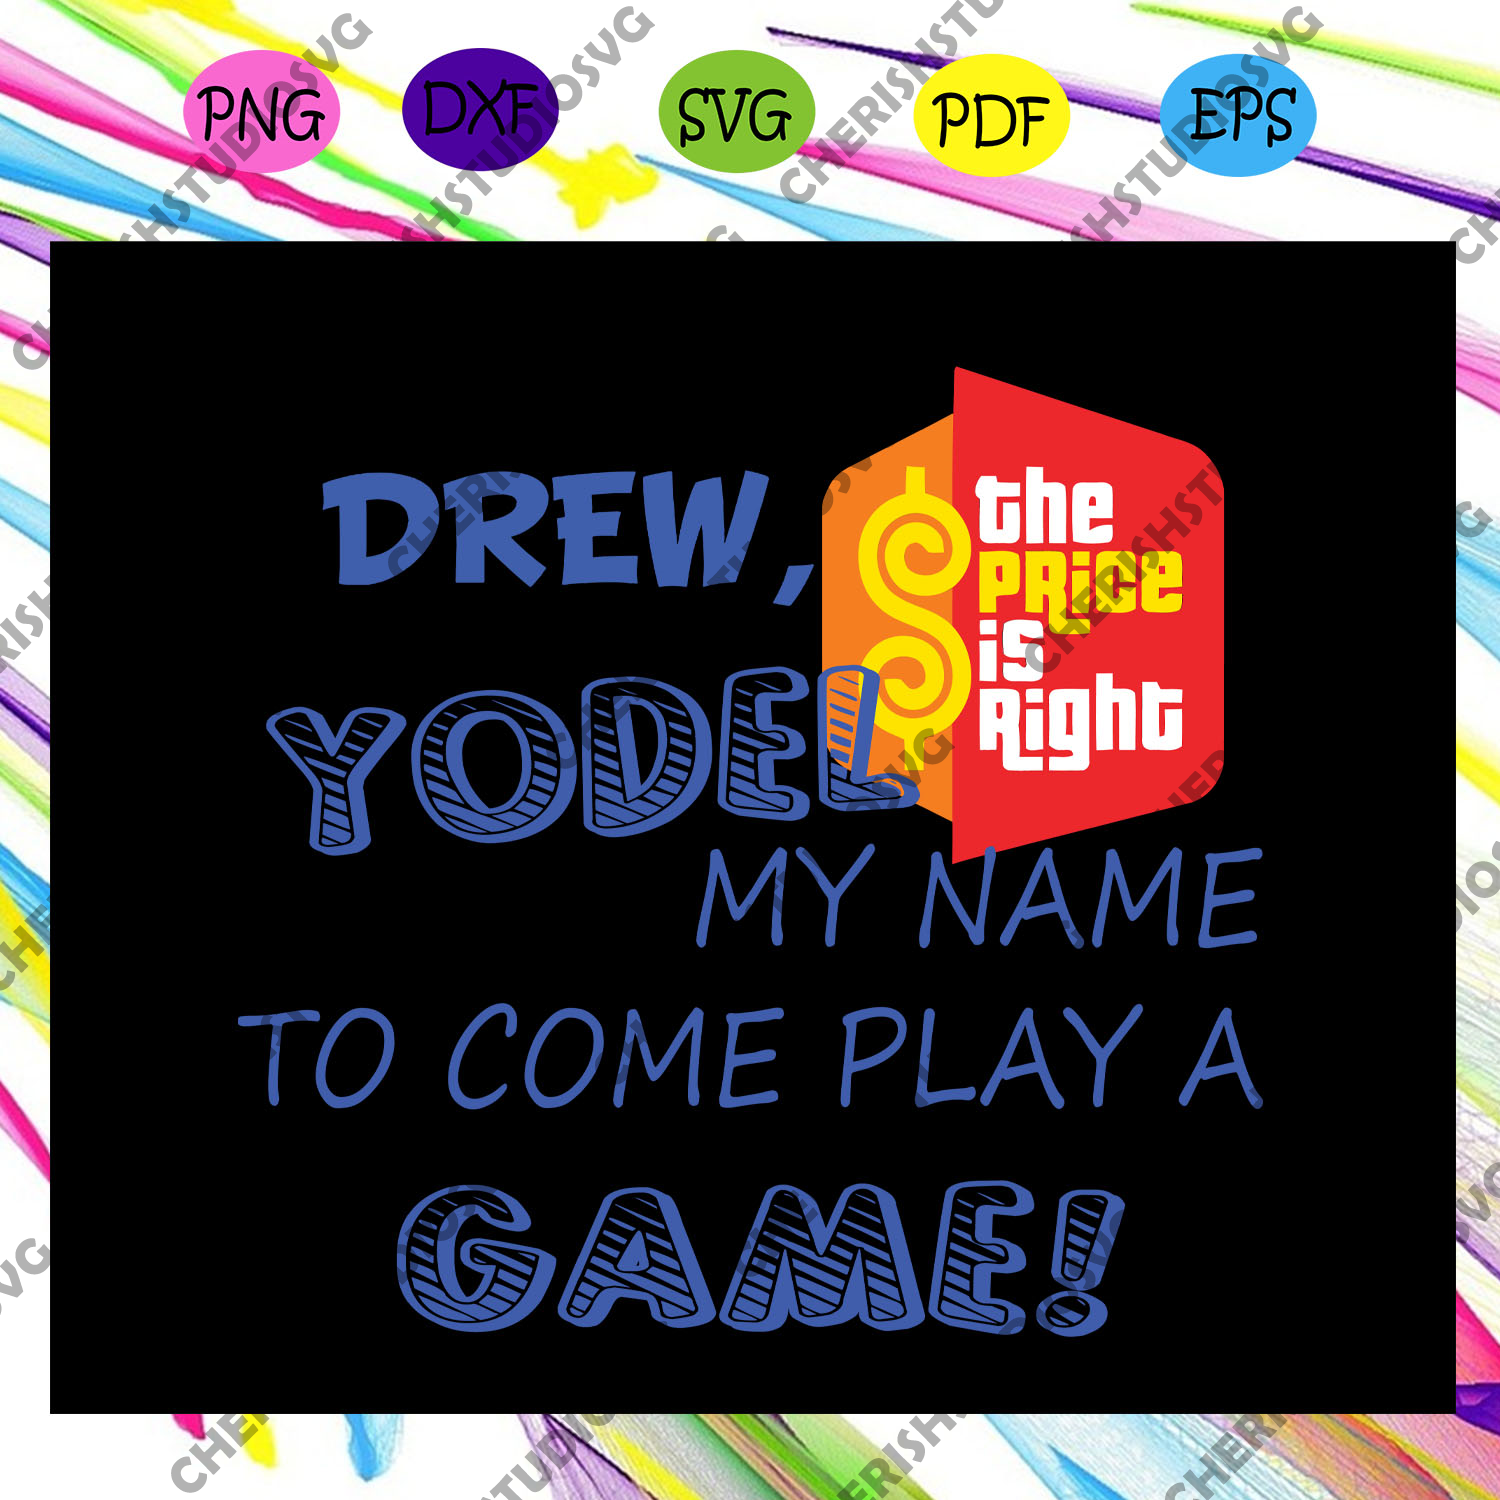 Drew yodel my name to come play a game, game day, vintage game, game gift, game svg,trending svg For Silhouette, Files For Cricut, SVG, DXF, EPS, PNG Instant Download